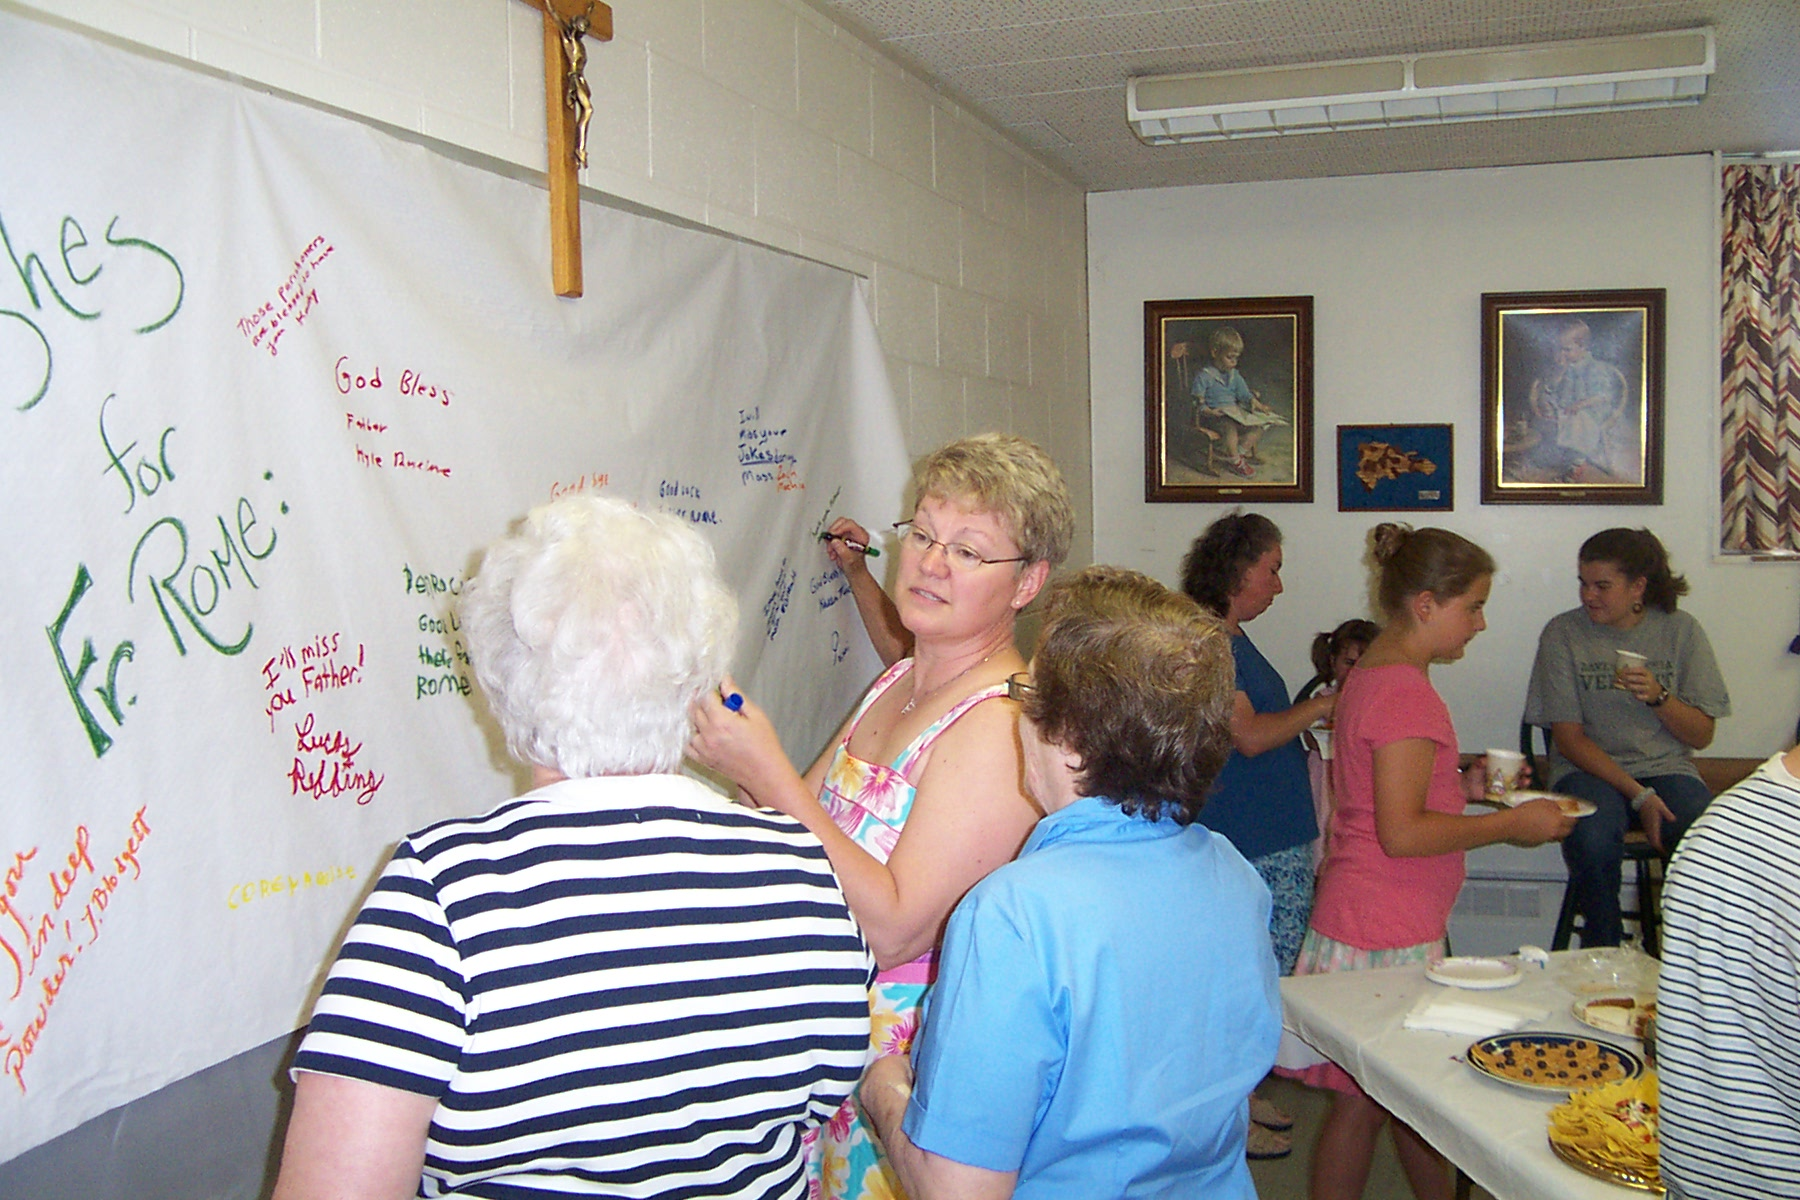 Van Lantagne signs the banner - 2008-06-29 019